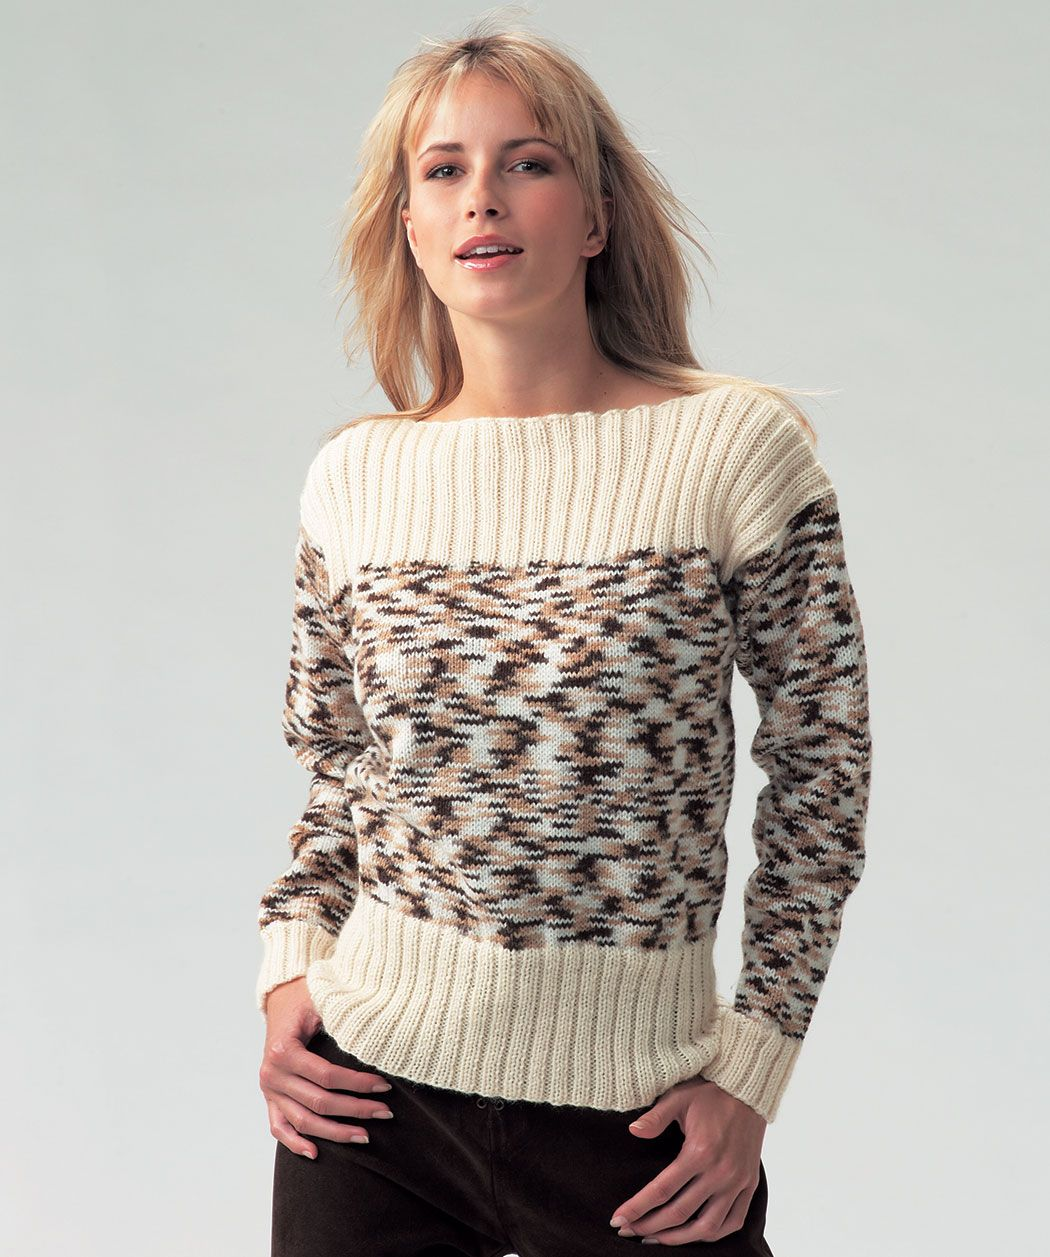 boat neck ladies jumper free knitting pattern in different colors obviously knitting. Black Bedroom Furniture Sets. Home Design Ideas